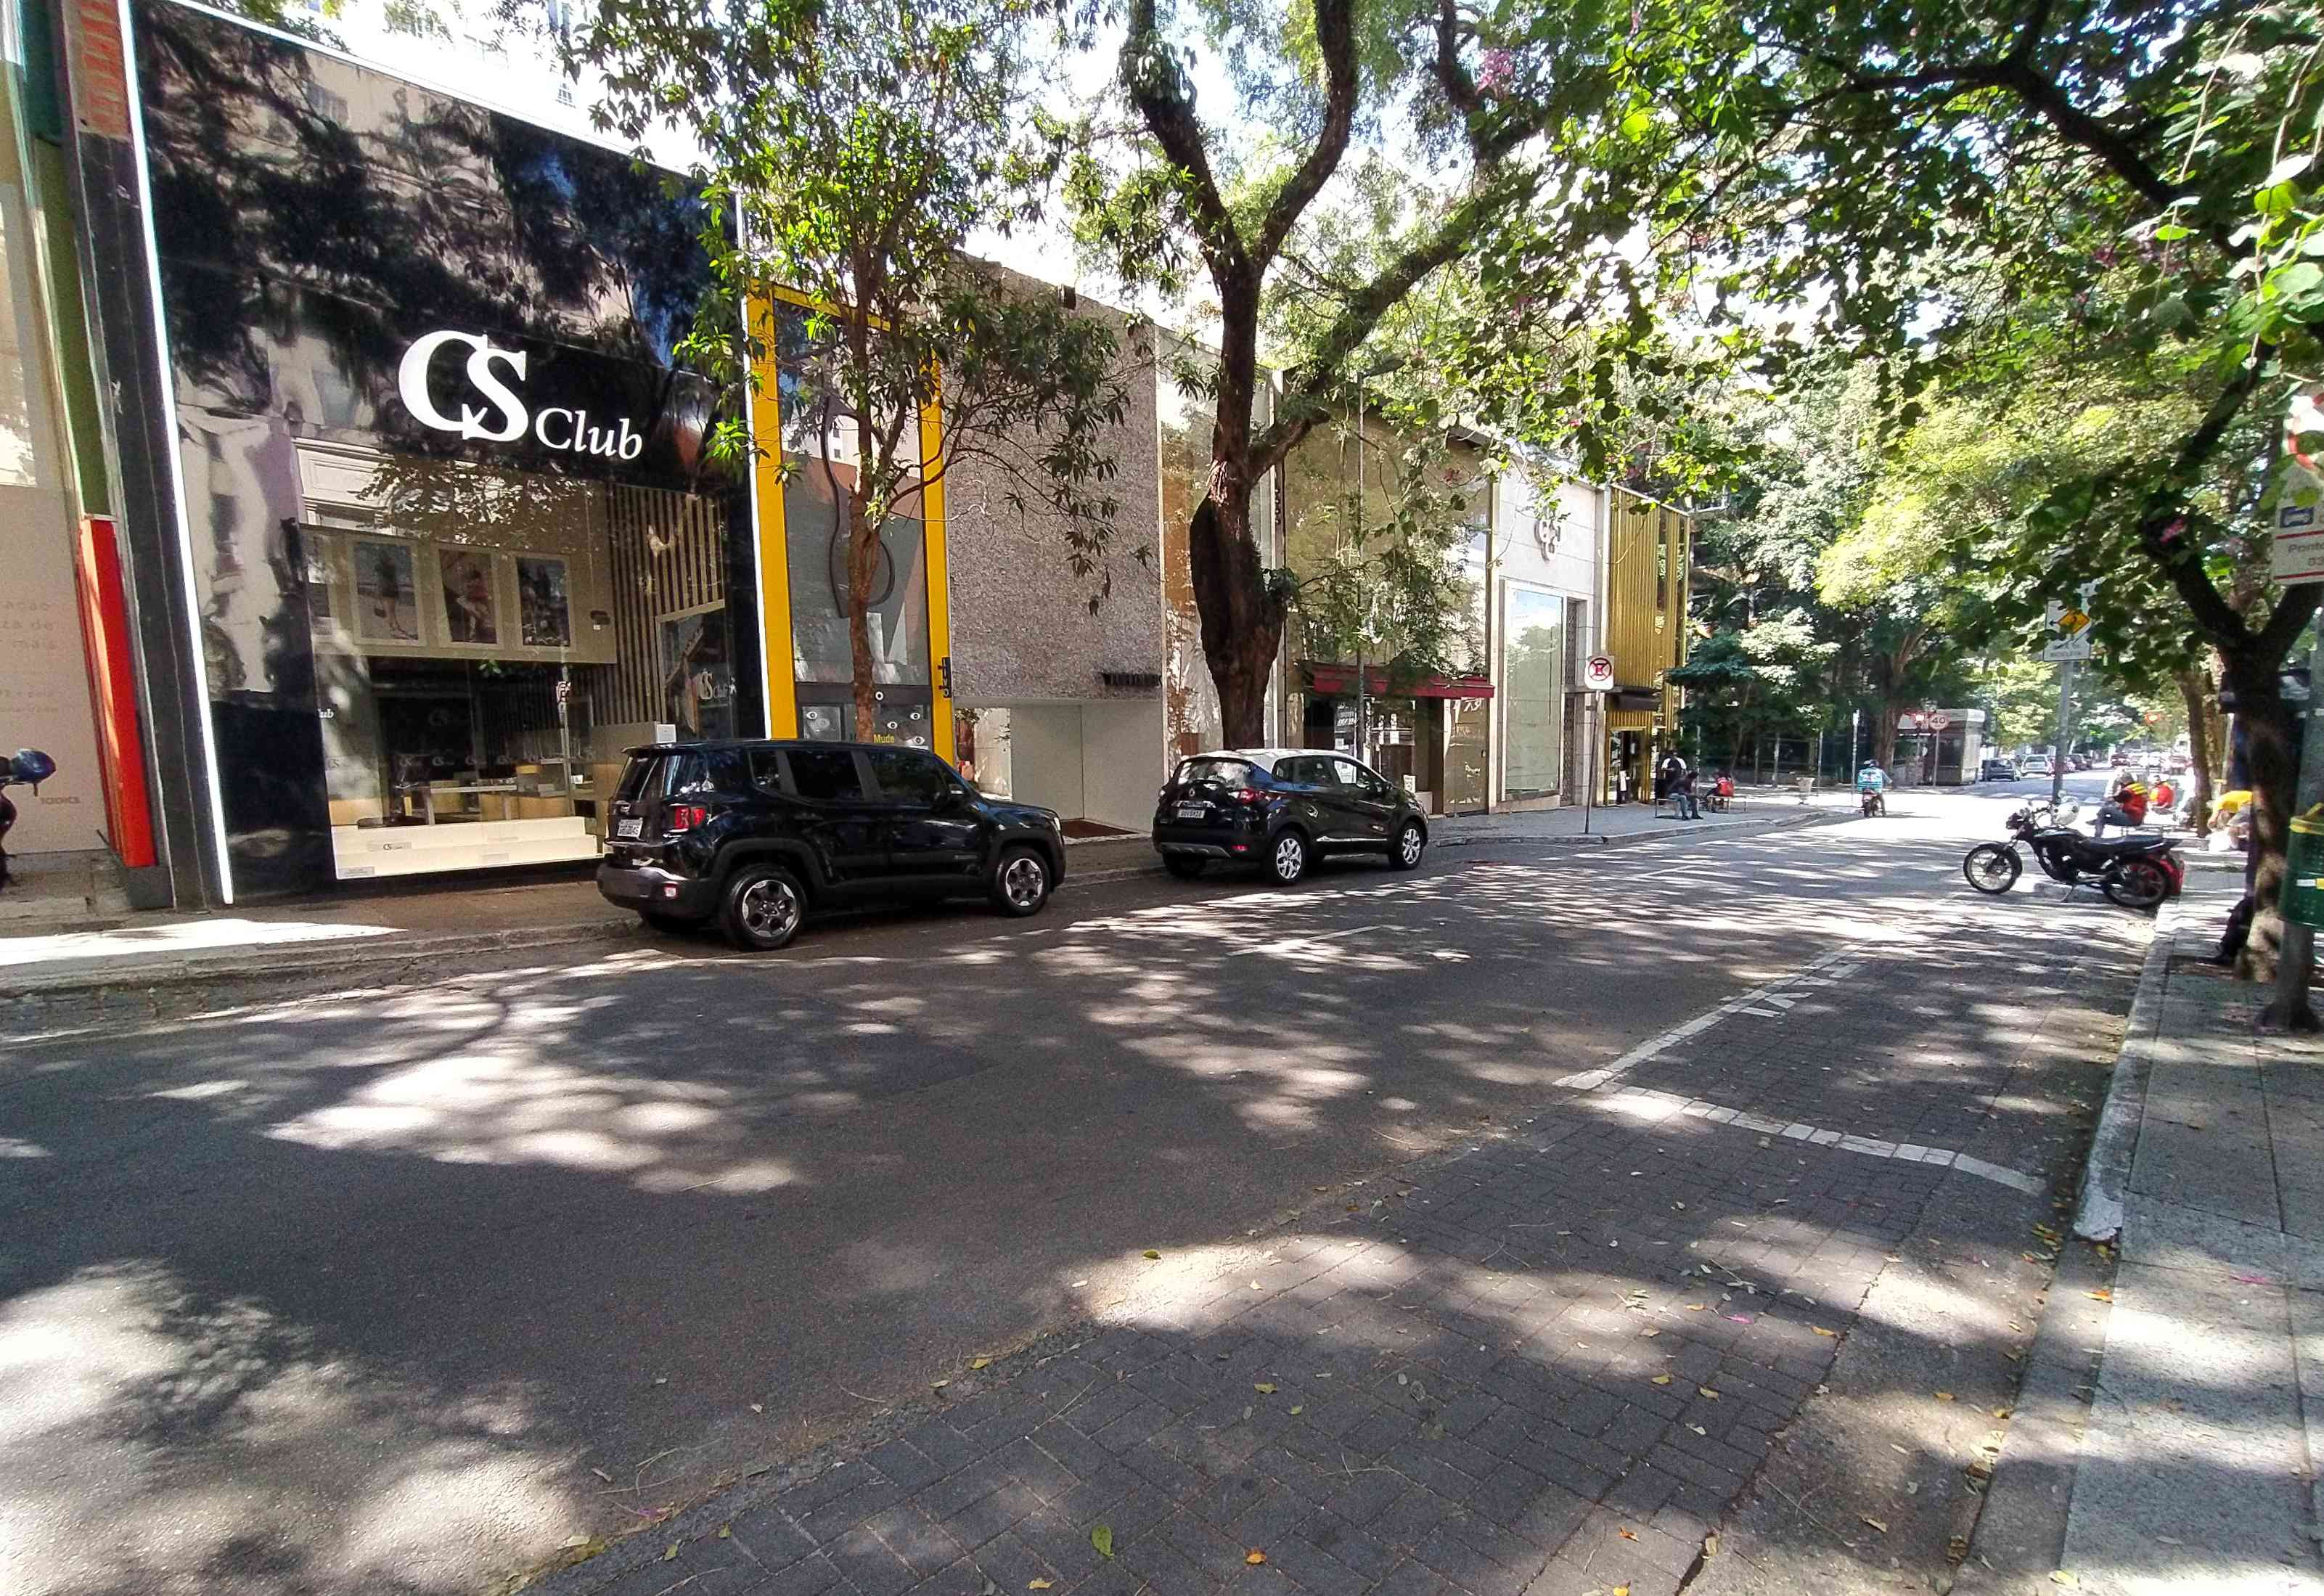 Oscar Freire street empty with closed shops on Jardins district.